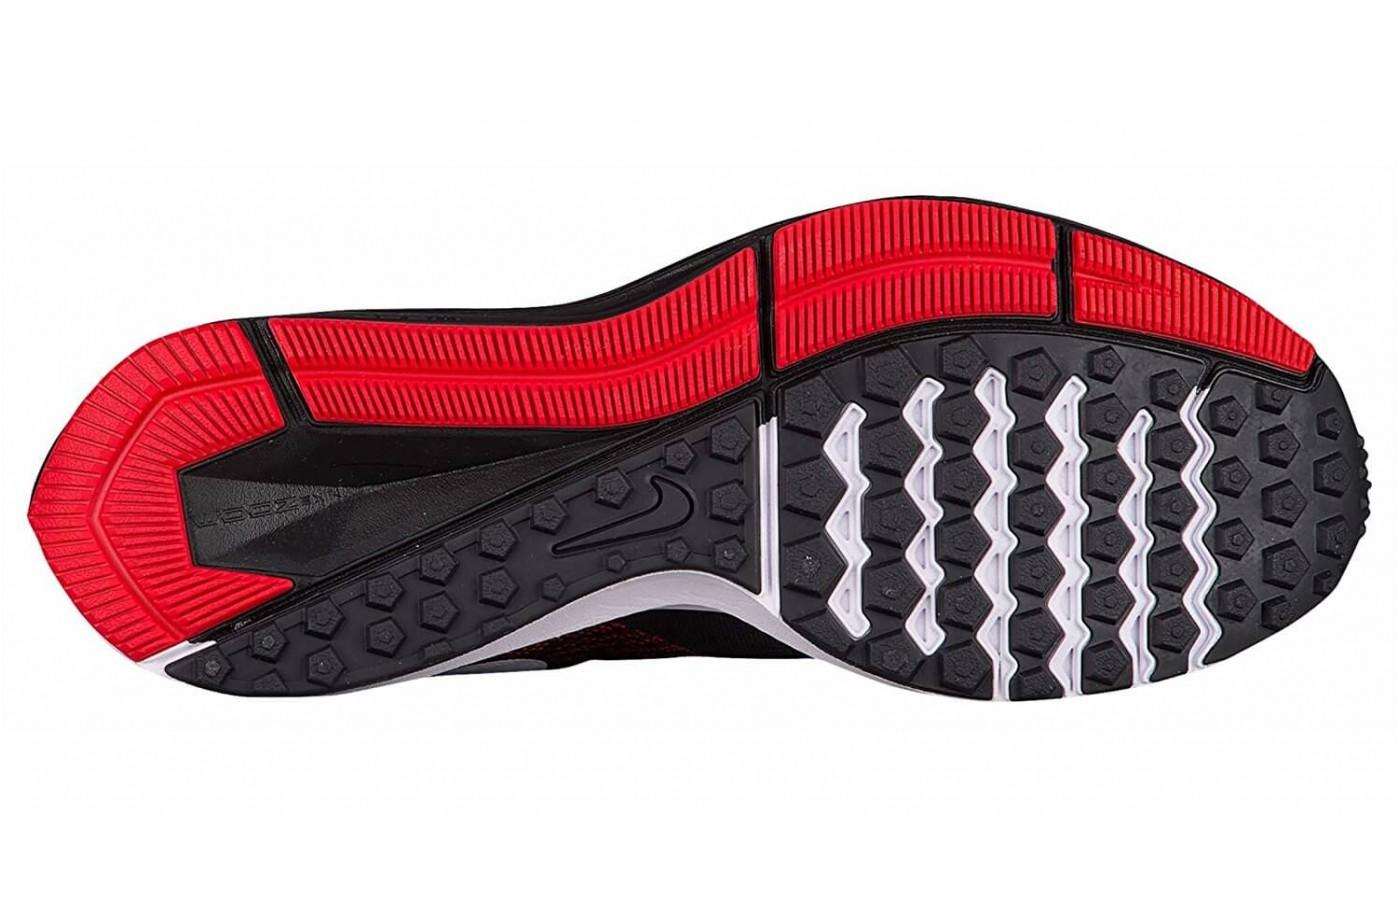 The waffle design of the outsole provides added traction